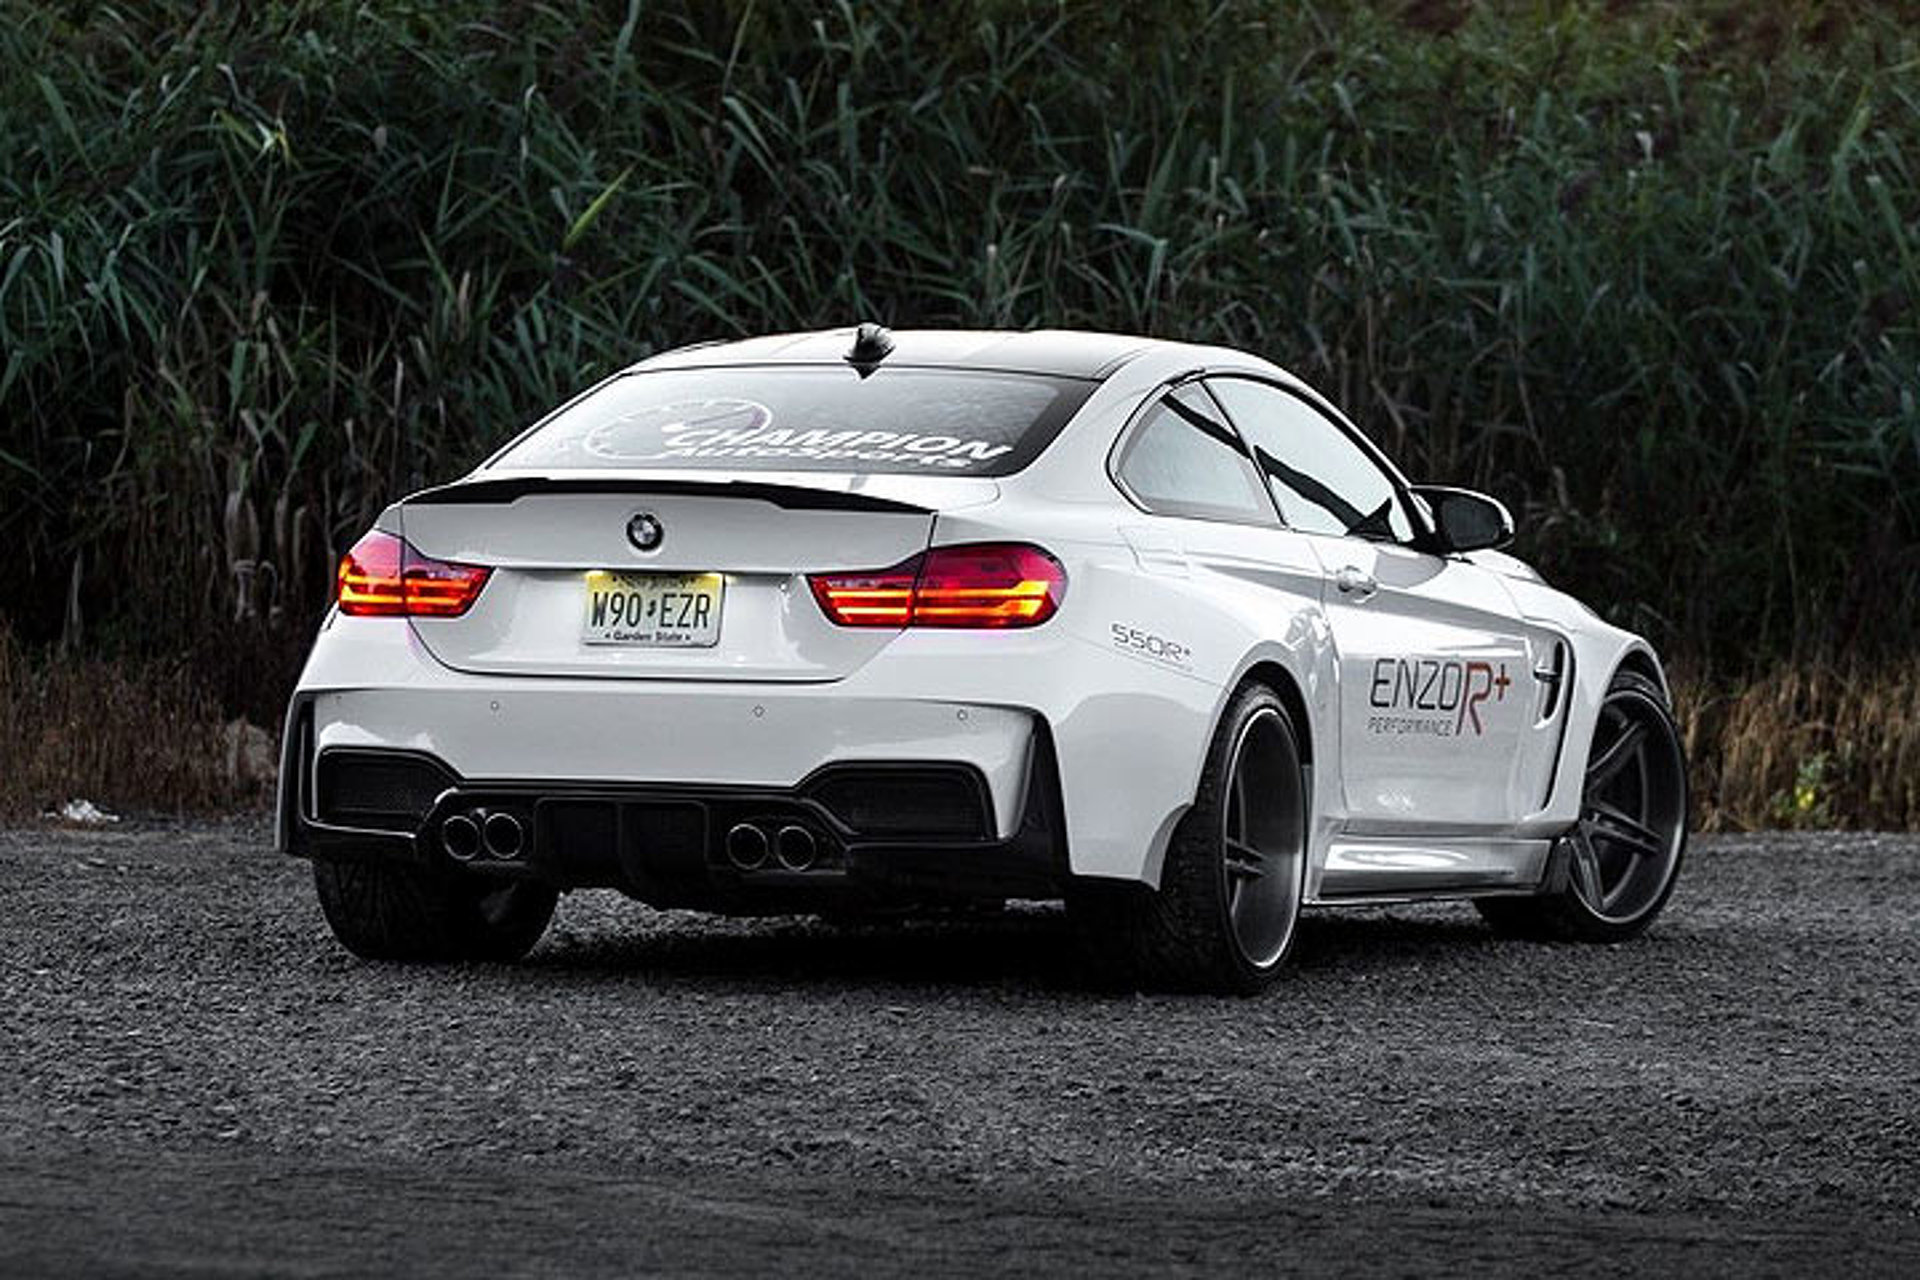 The 2015 BMW M4 Looks Menacing in Widebody Form